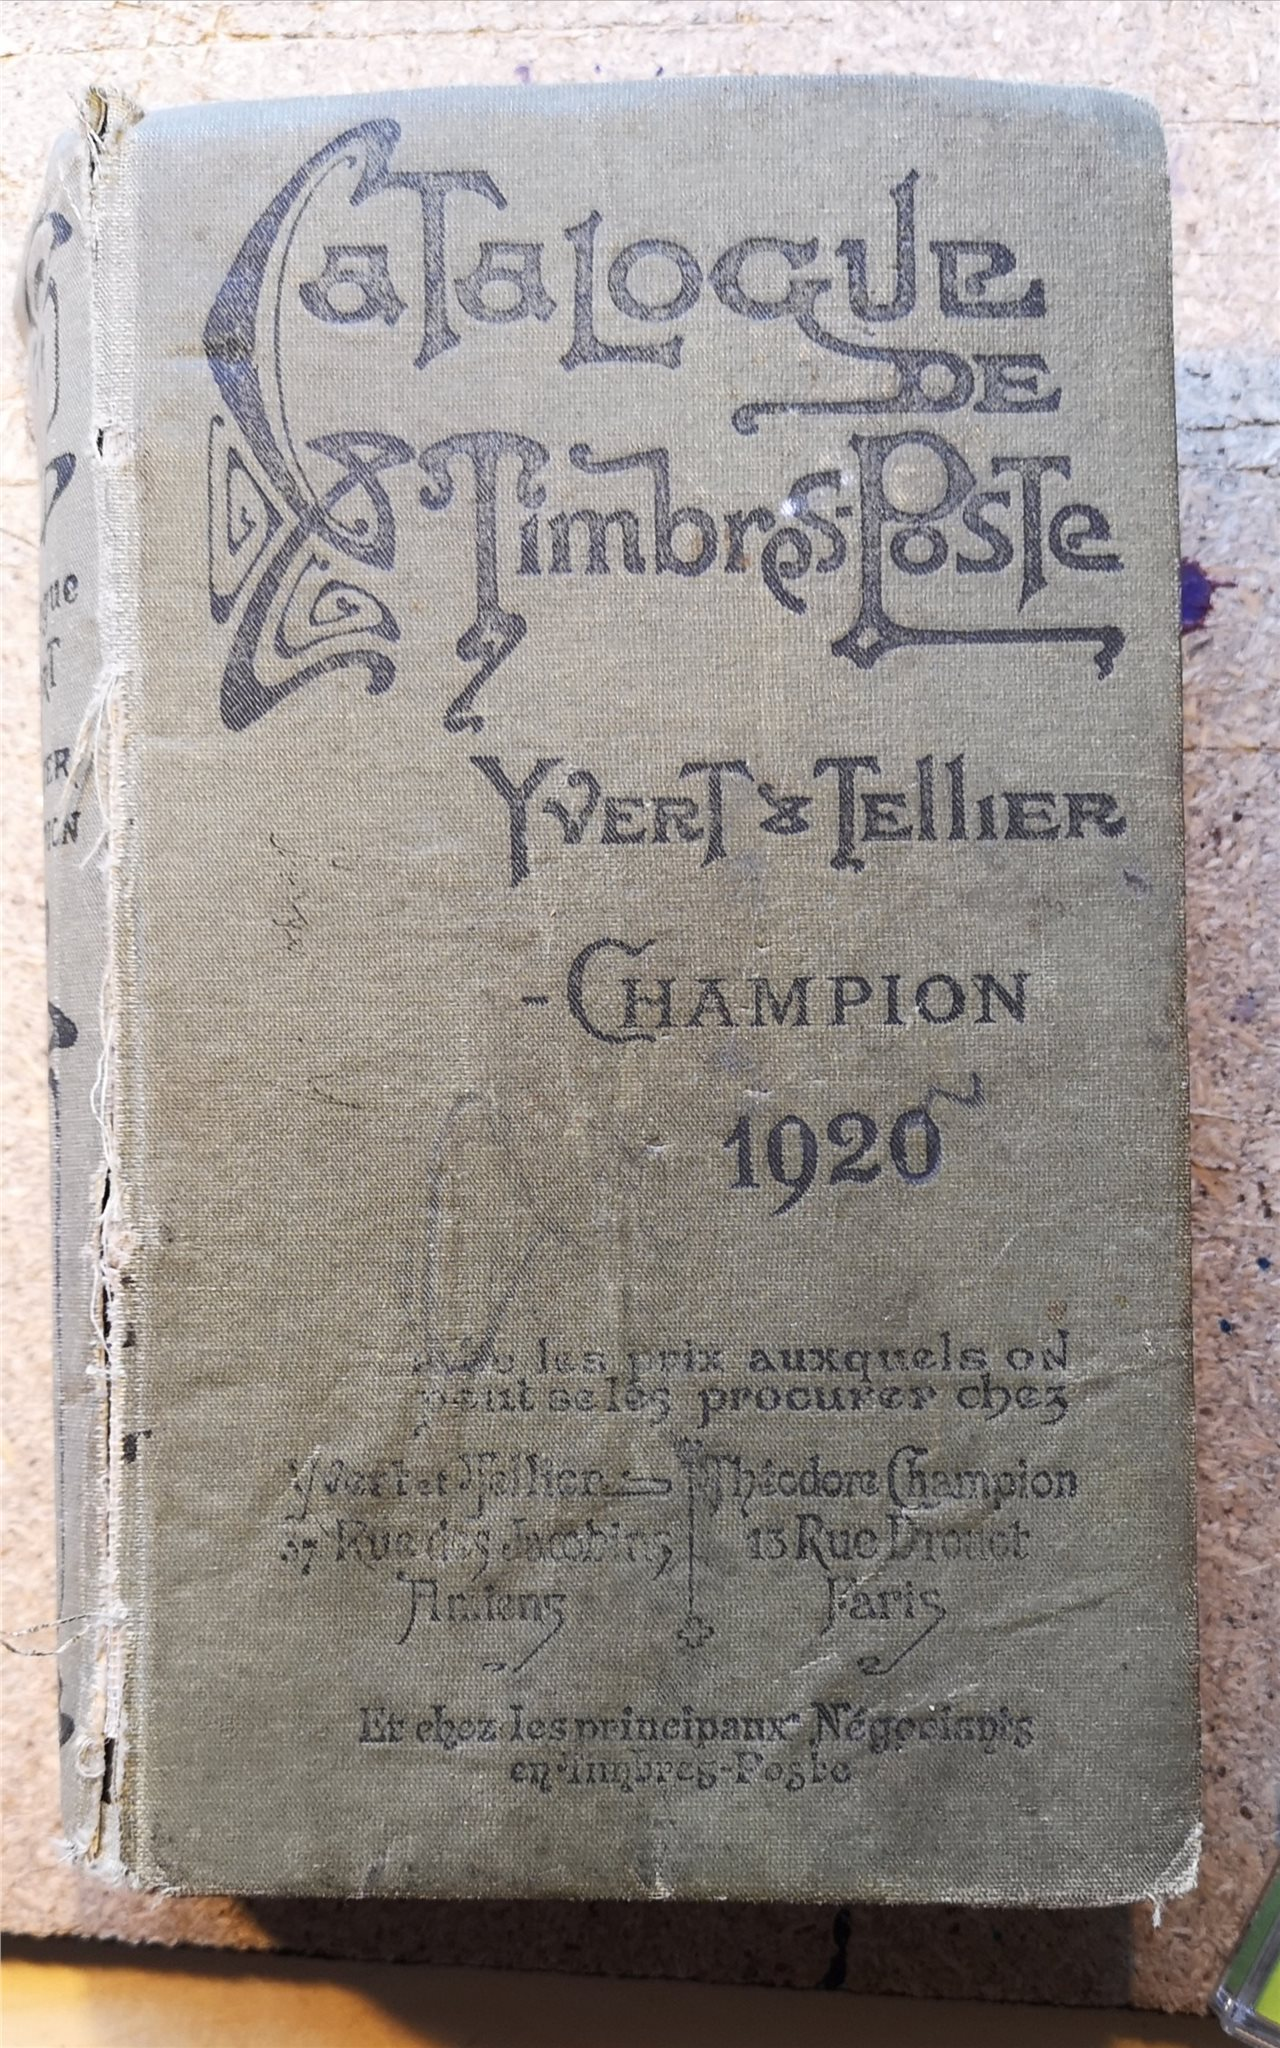 Catalogue de Timbre Post, Yvert et Tellier, Chamion 1920